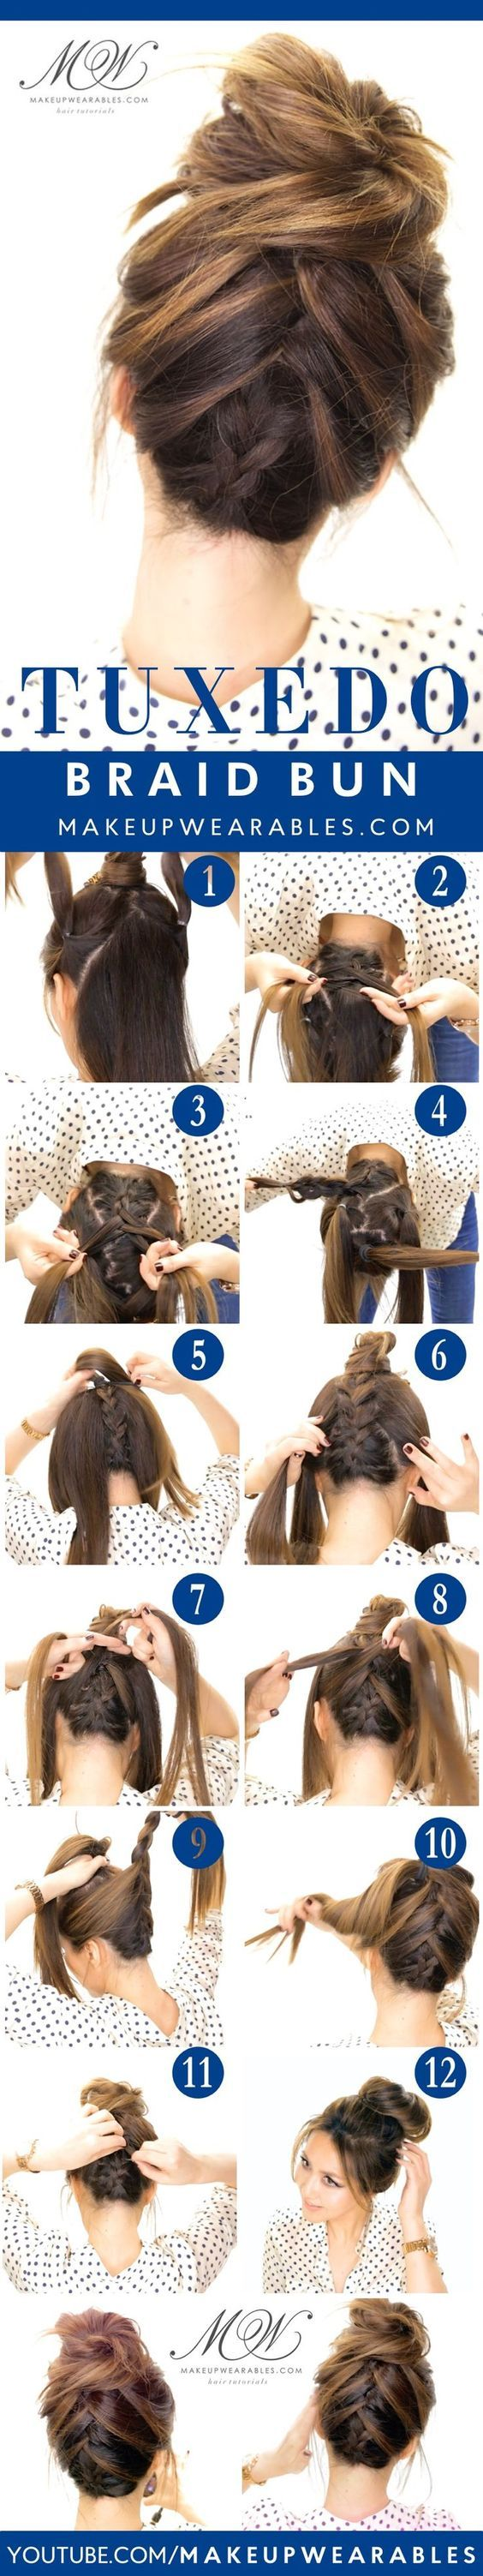 17 best hairstyle ideas images on pinterest | hairstyle ideas, hair